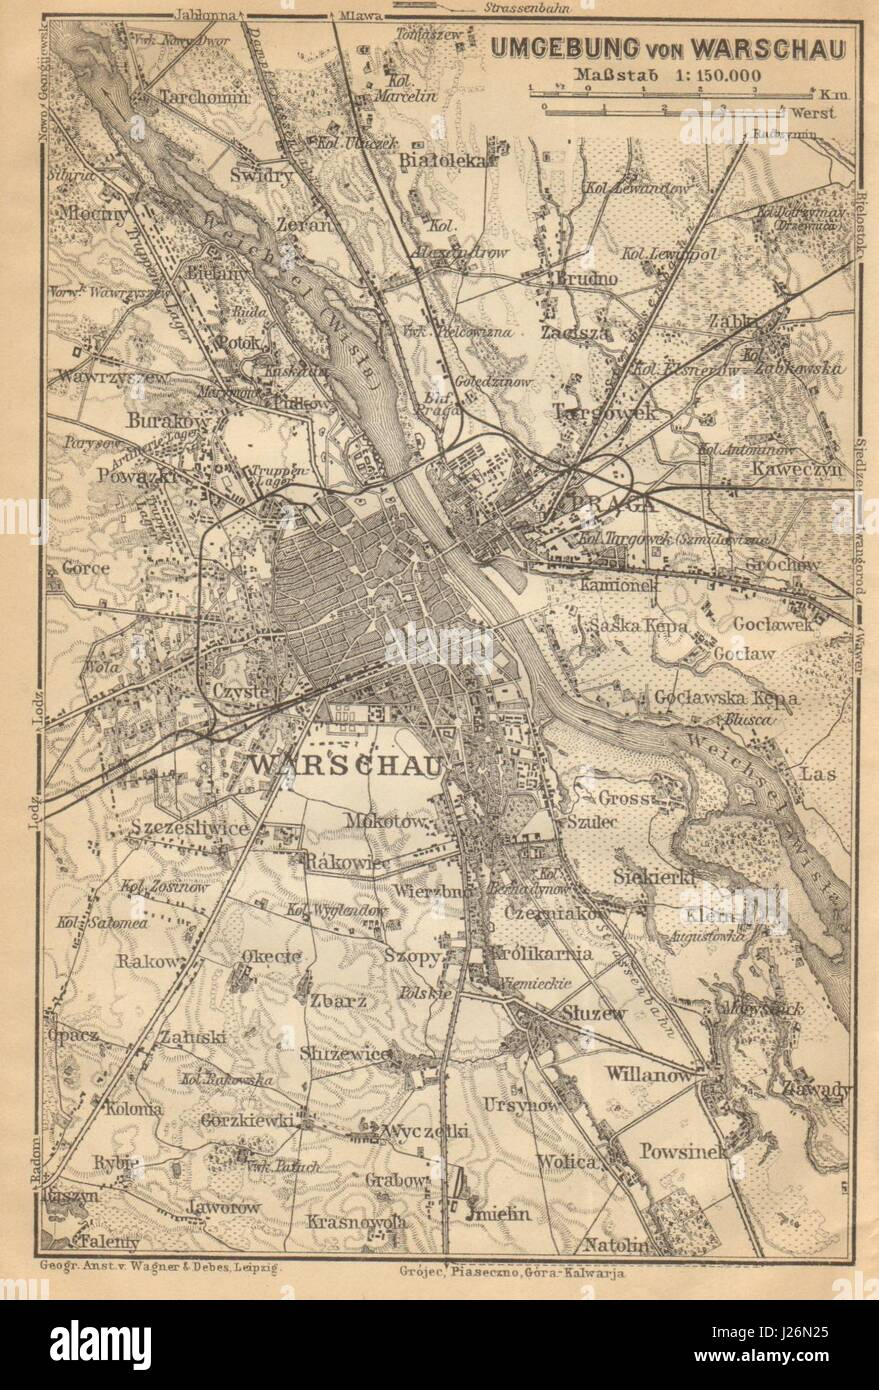 Warsaw Map Old Stock Photos & Warsaw Map Old Stock Images ... on